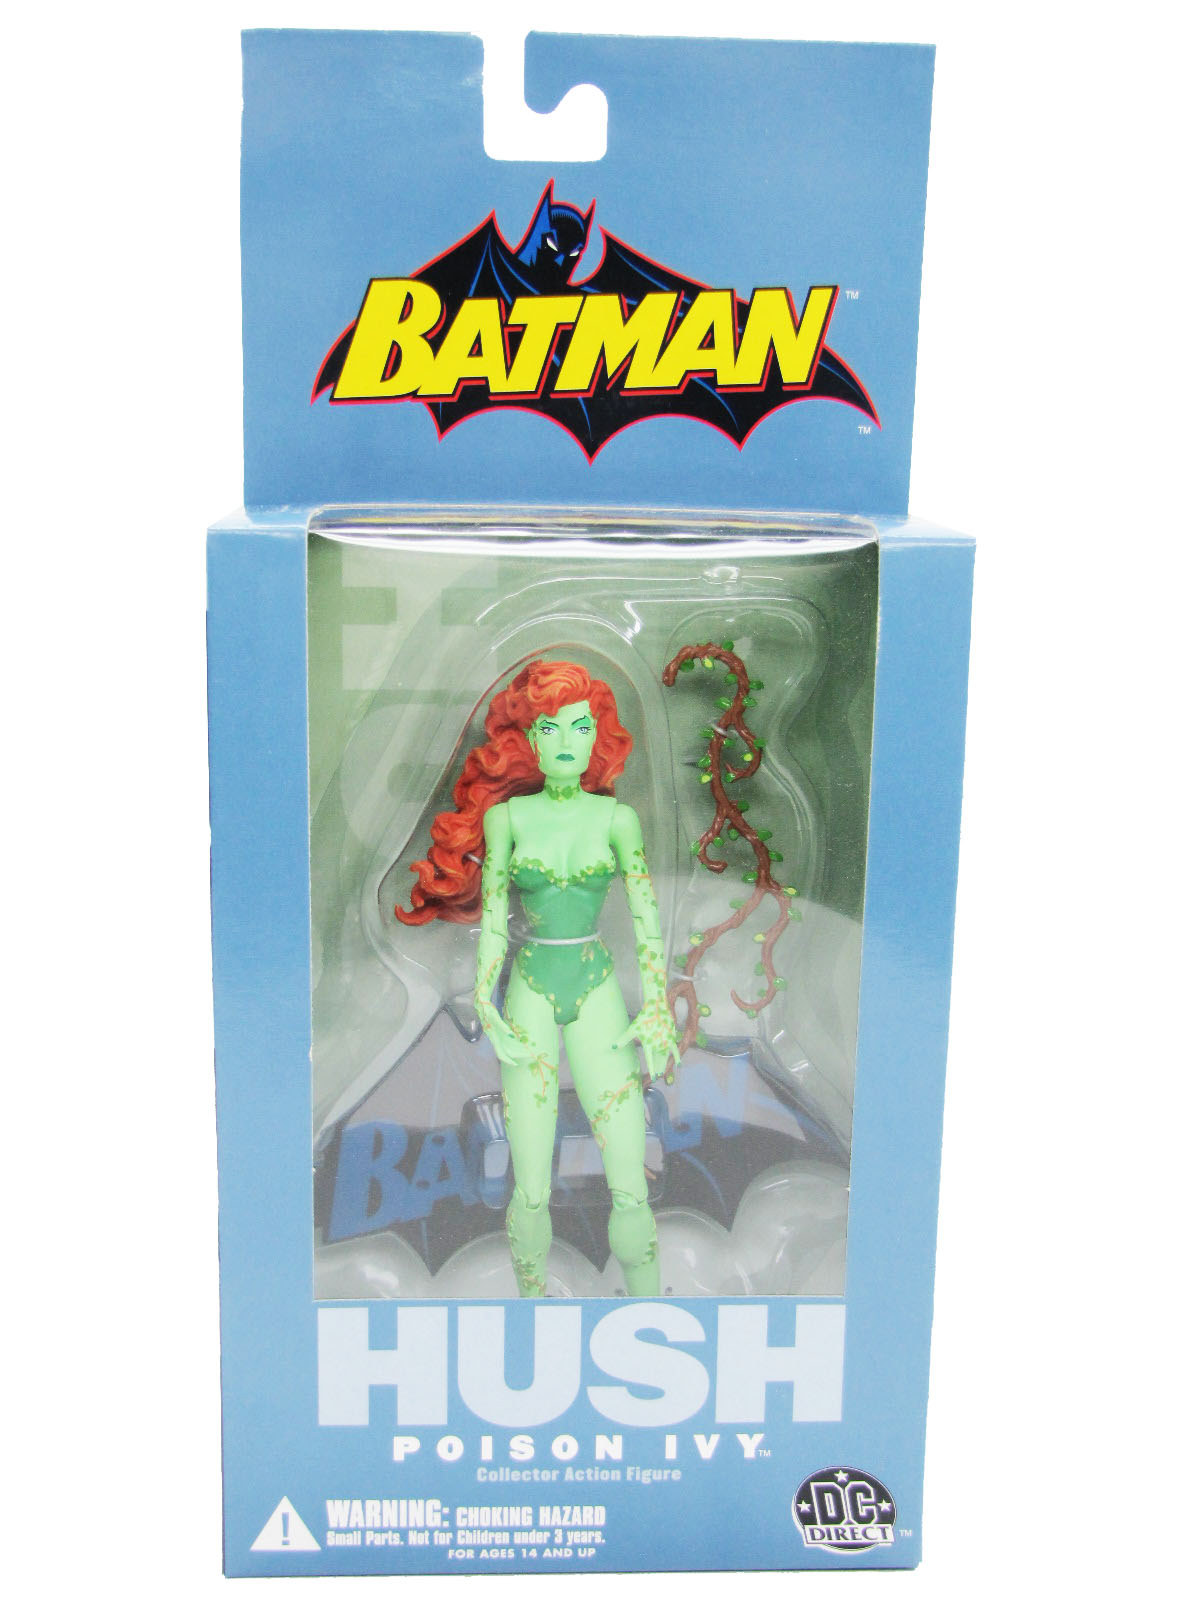 Batman Hush Poison Ivy MISB